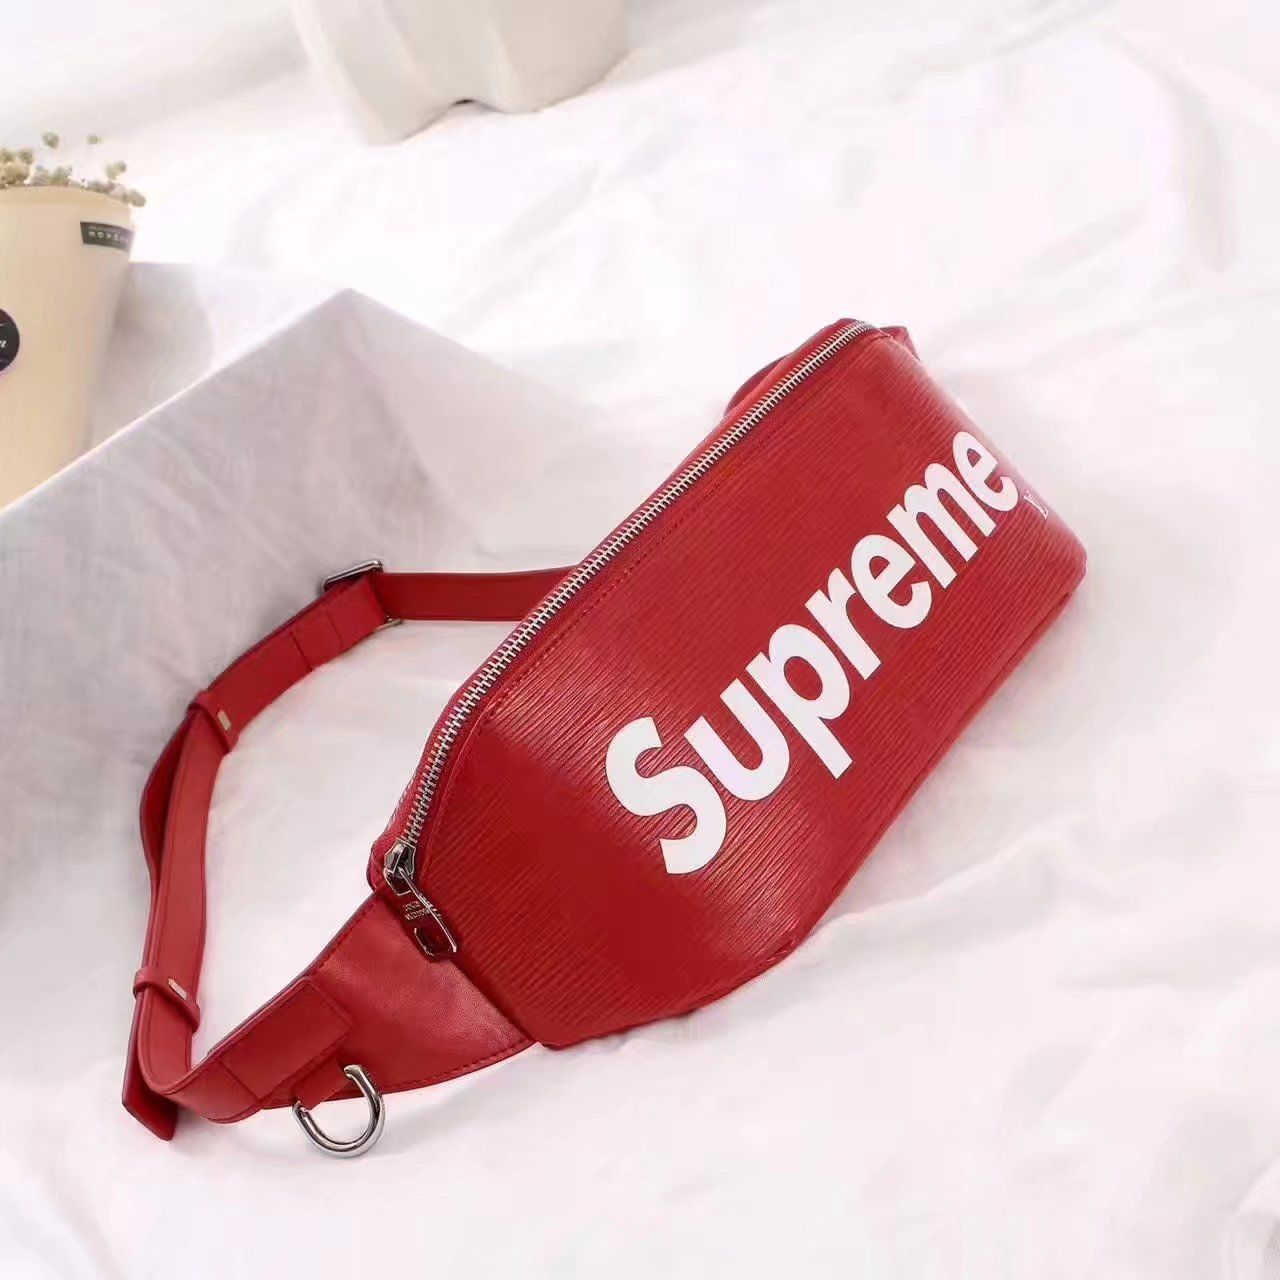 Replica Louis Vuitton x Supreme Bum bag Epi Red ID 31411   Girl ... 96c1edb27c9